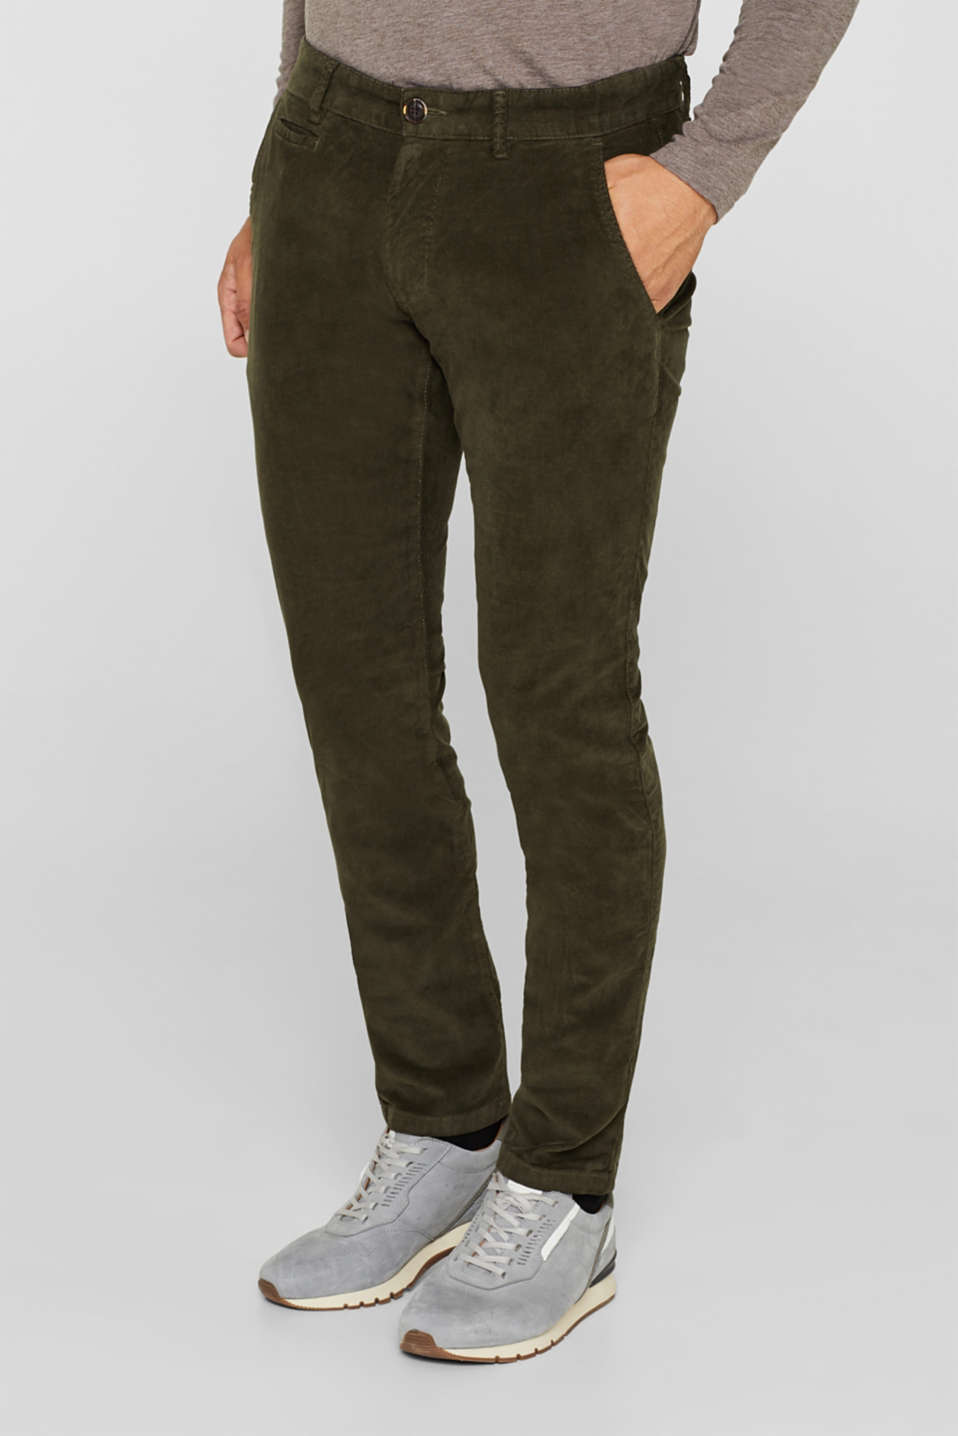 Corduroy trousers made of 100% cotton